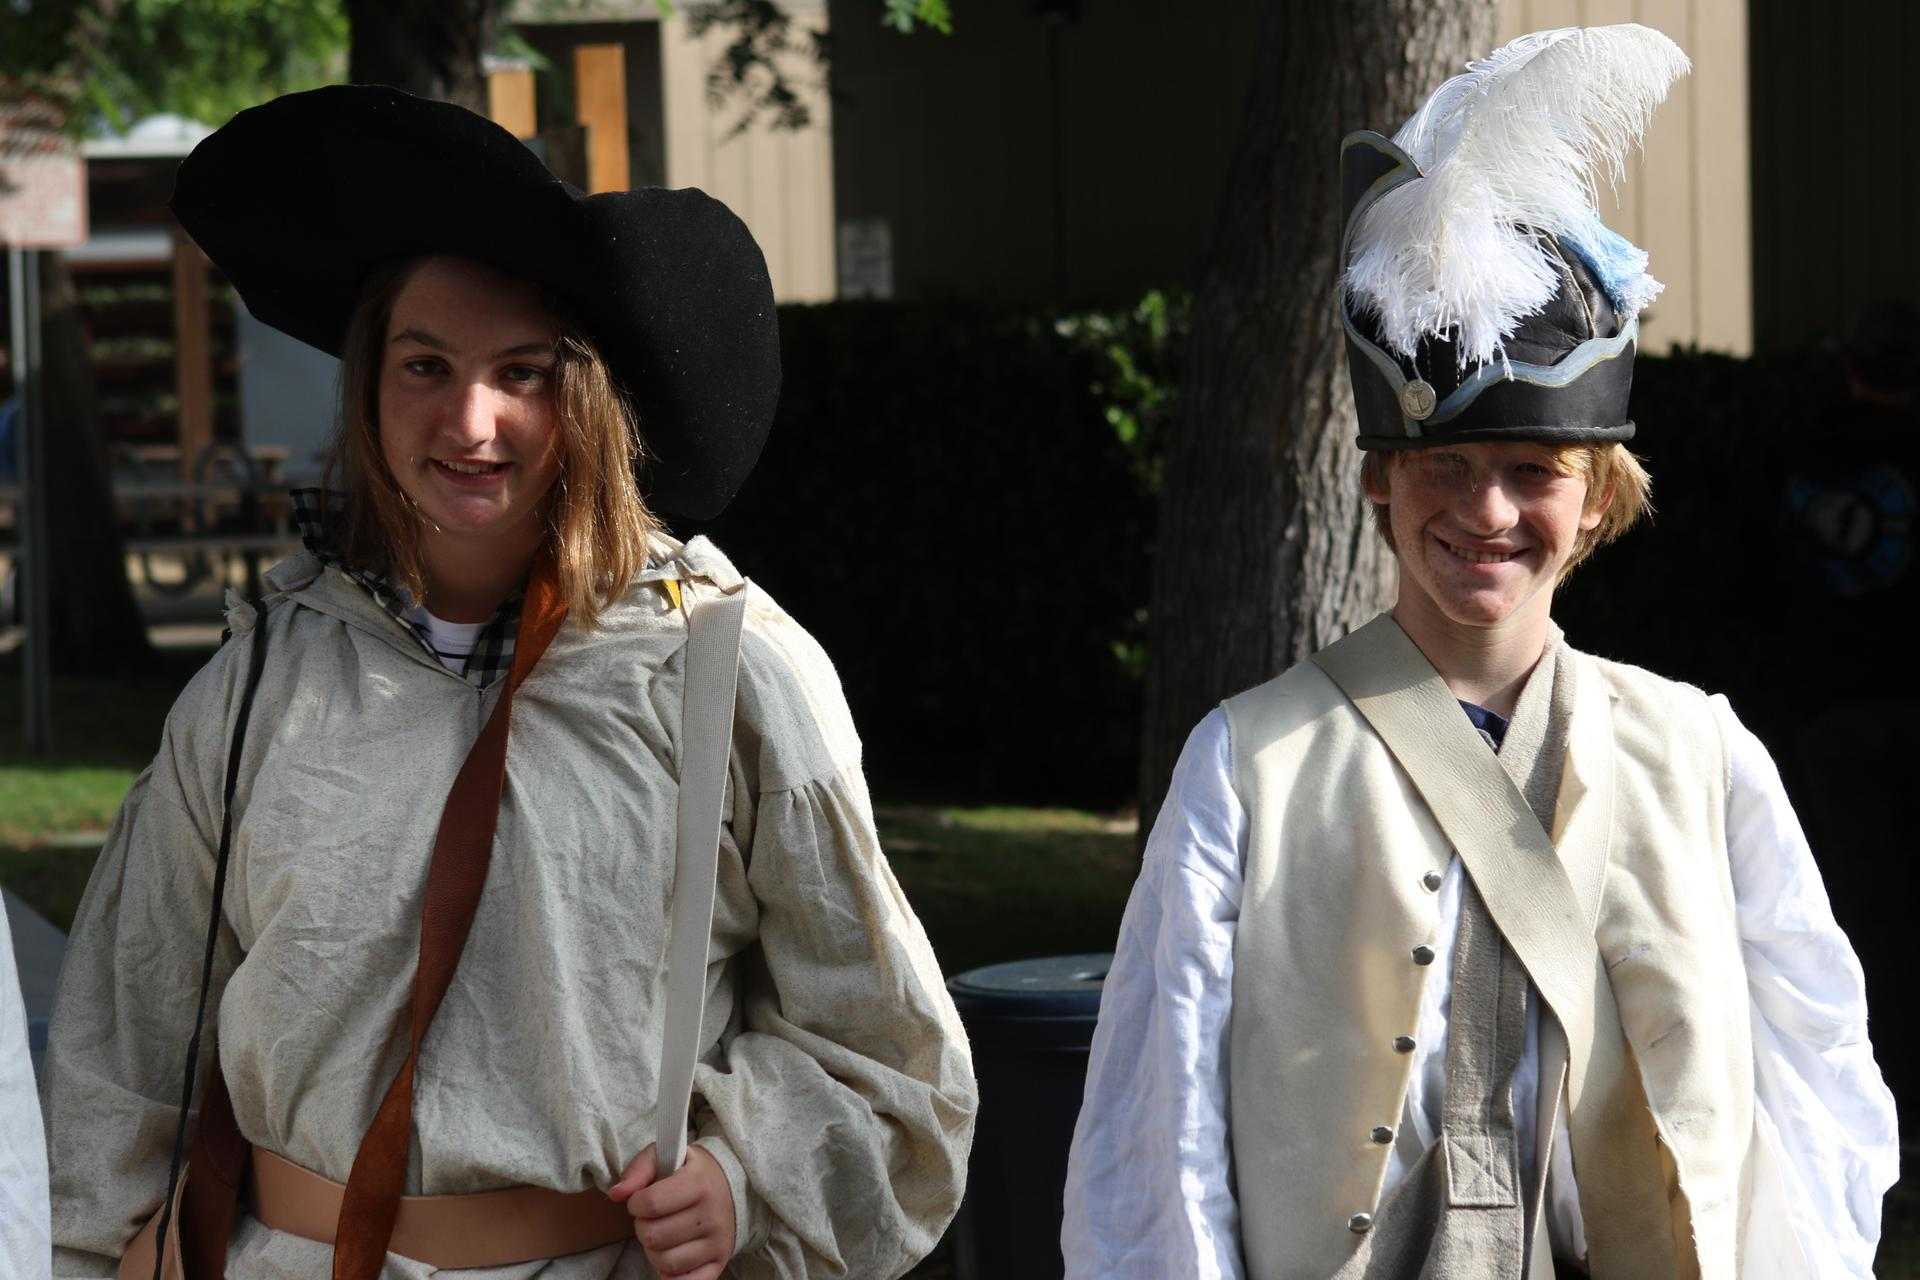 Students taking part in a history activity in costume